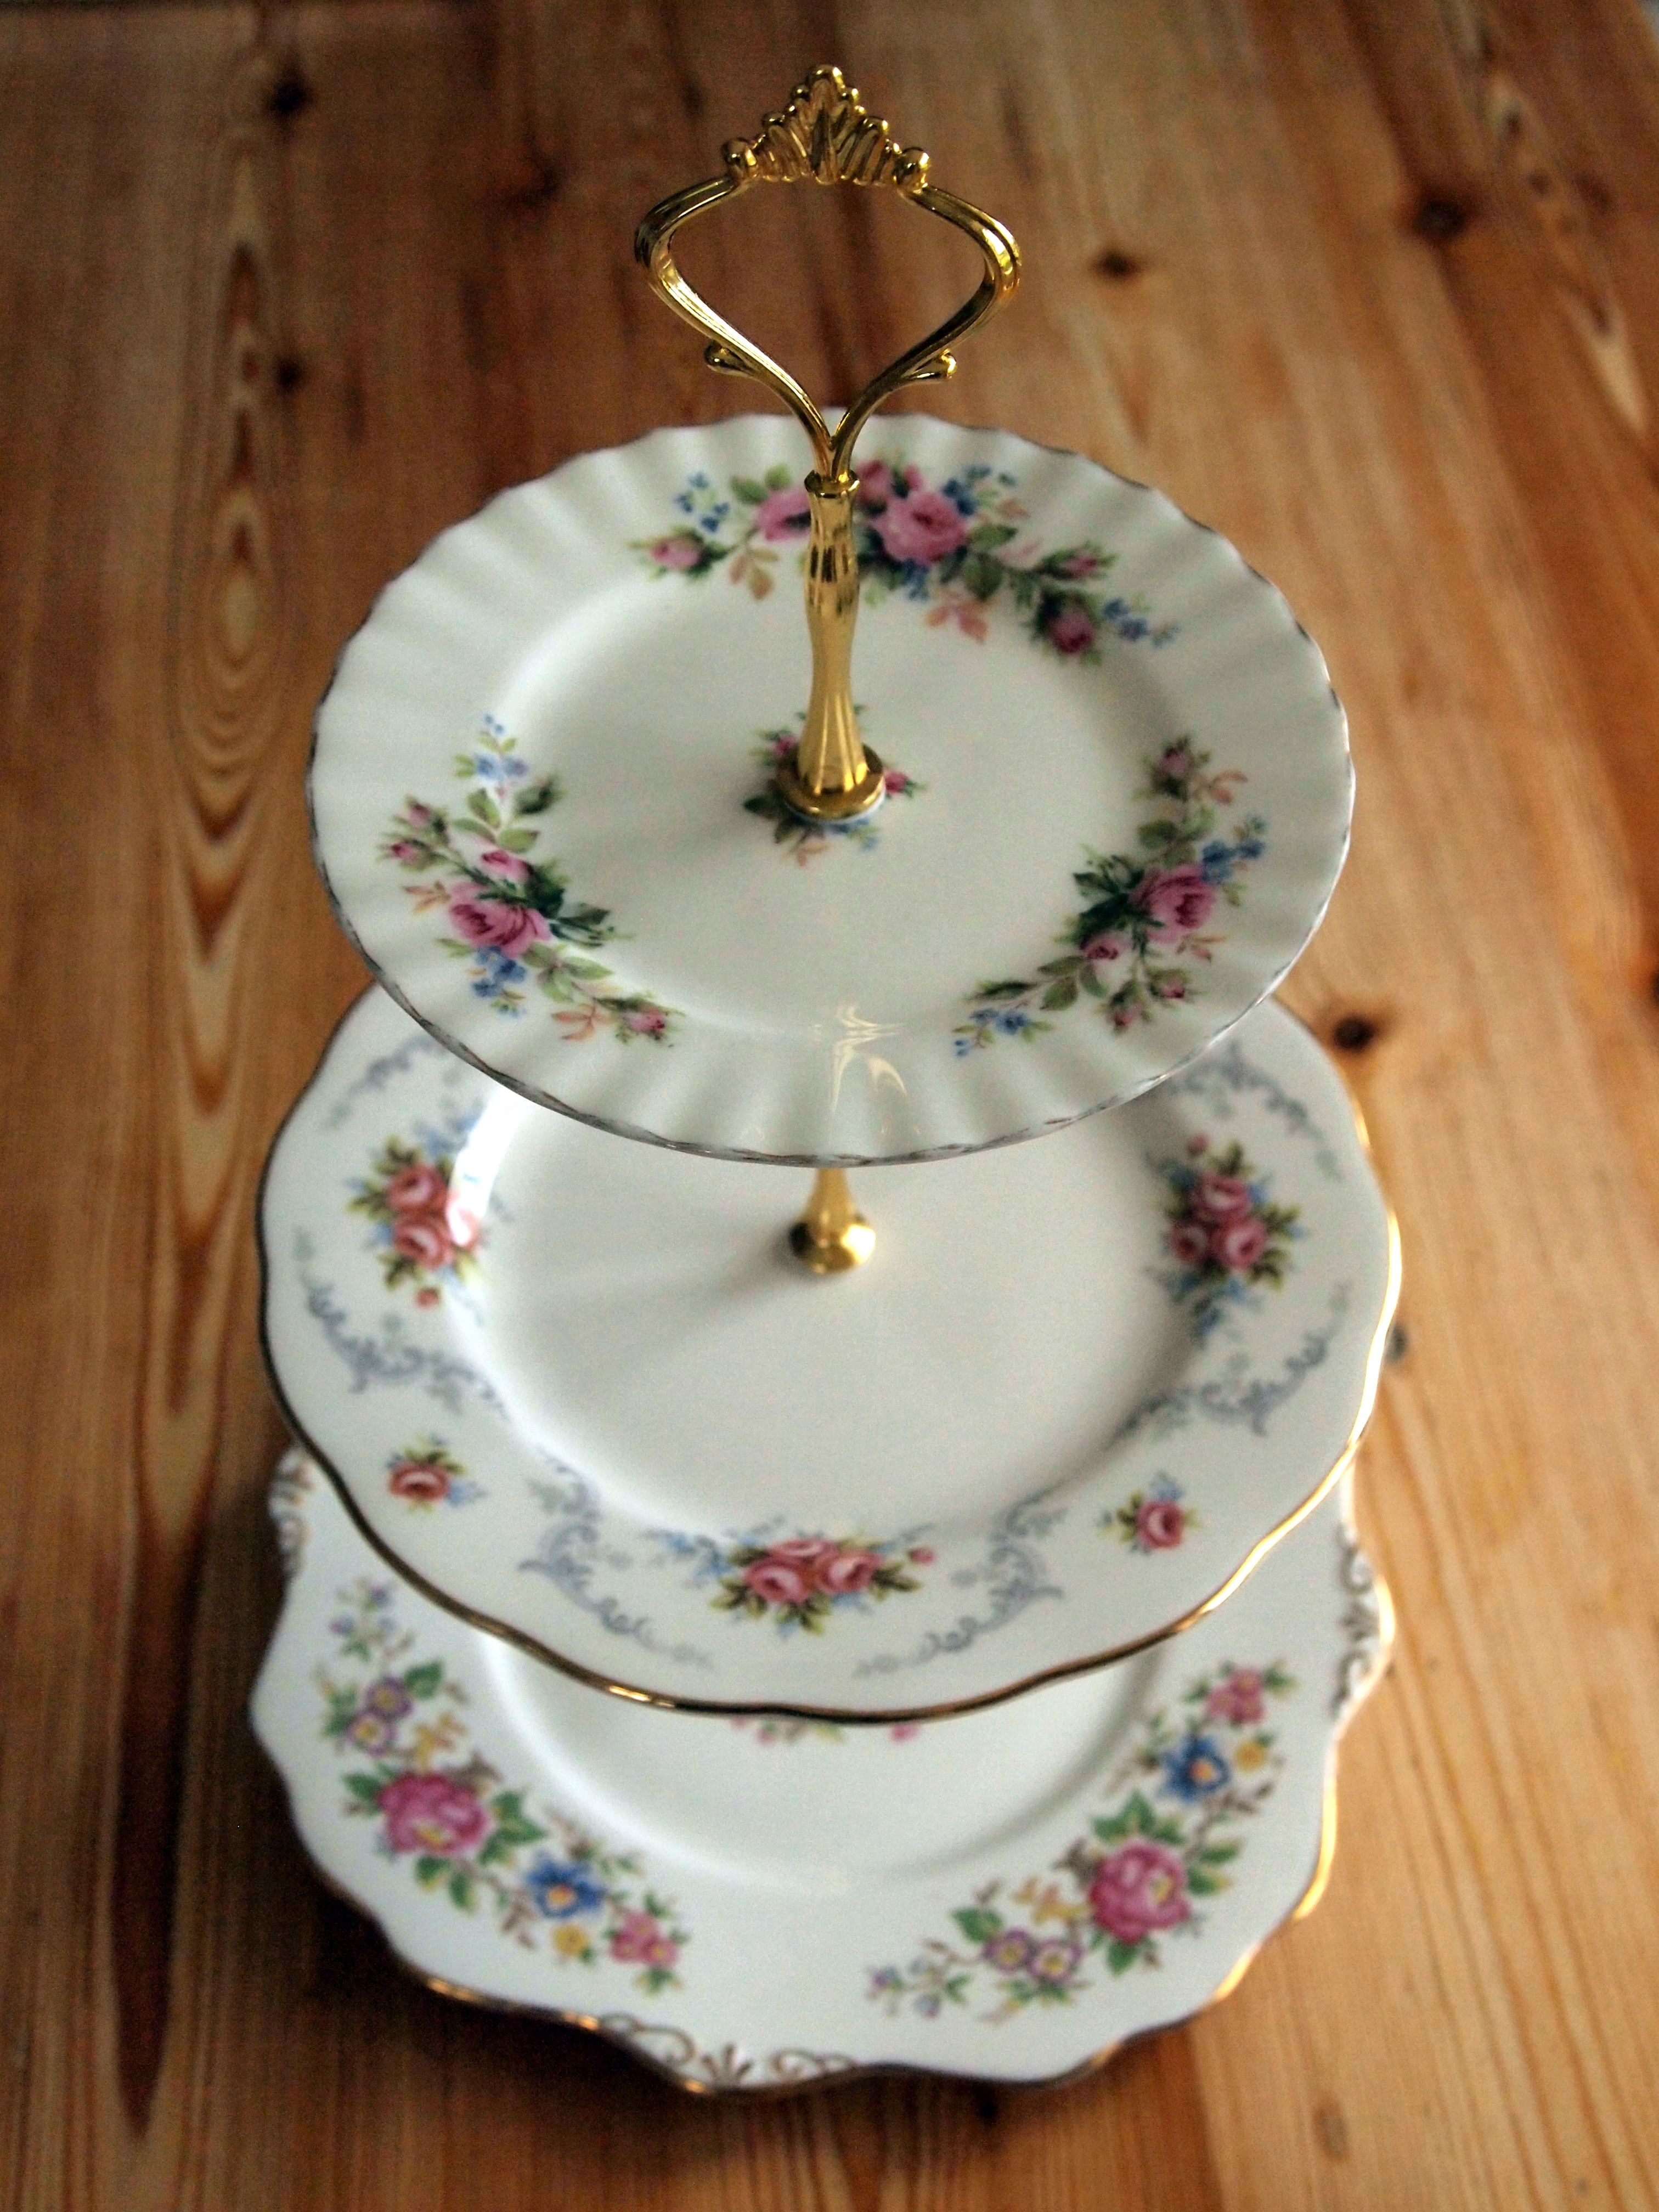 My homemade cake stand using vintage plates & My homemade cake stand using vintage plates | diy - crafts and ...